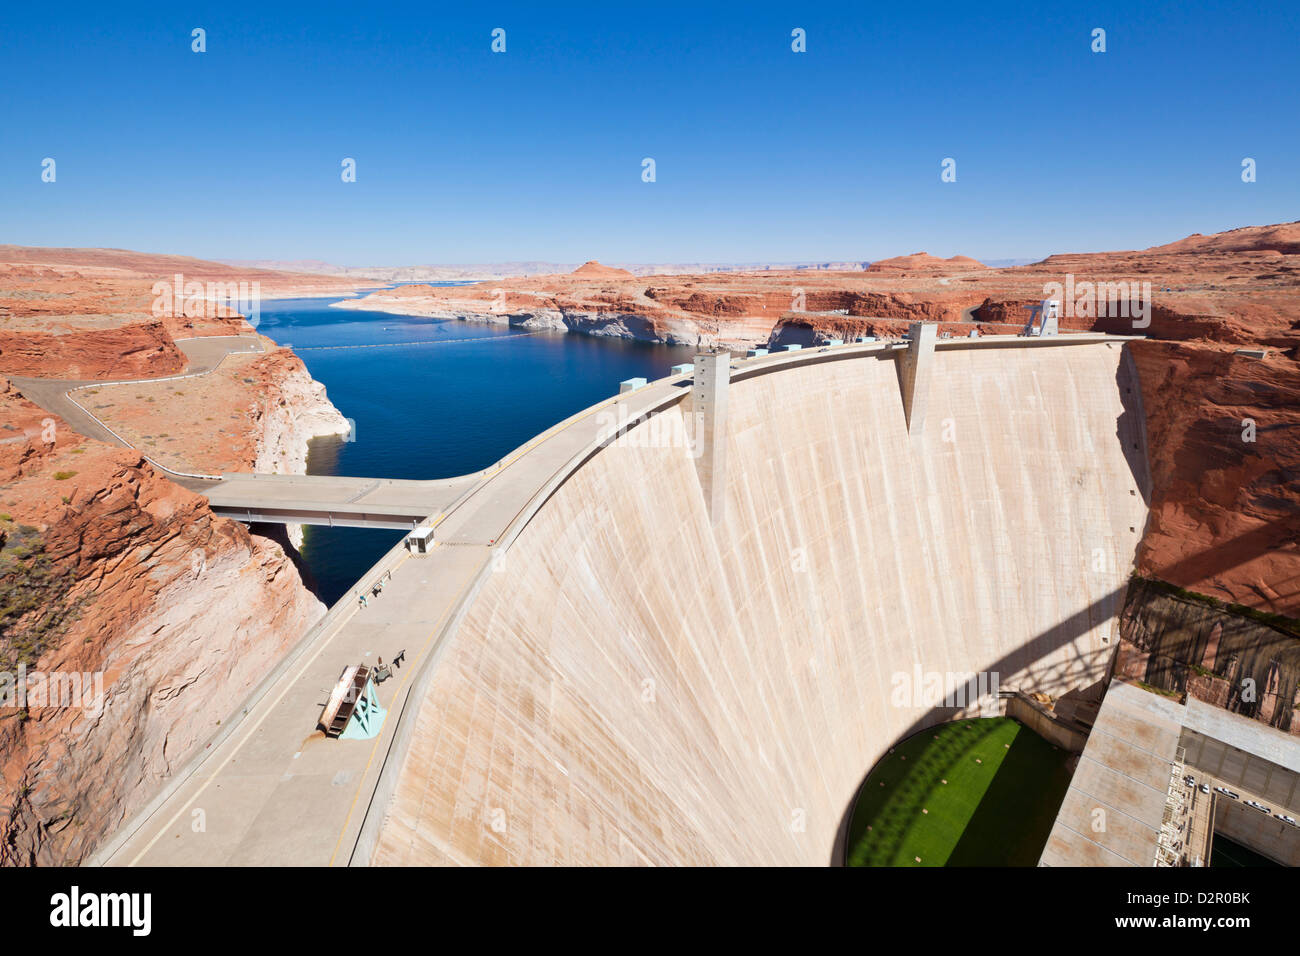 Glen Canyon Dam, Lake Powell, Page, Arizona, United States of America, North America - Stock Image